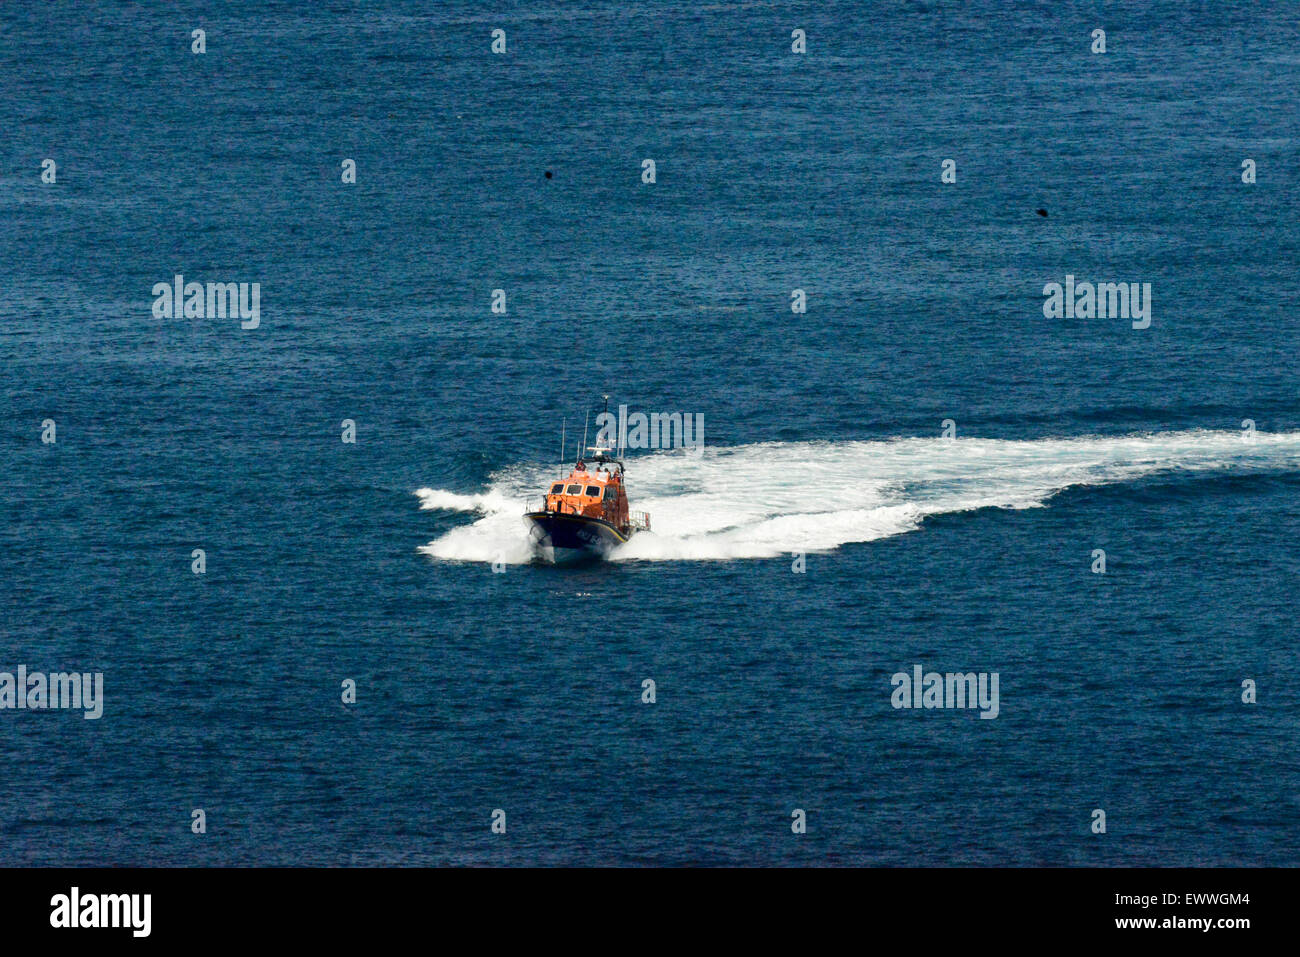 Padstow Lifeboat carrying out search and rescue operation around Trevose head and the Camel Estuary. Cornwall UK - Stock Image